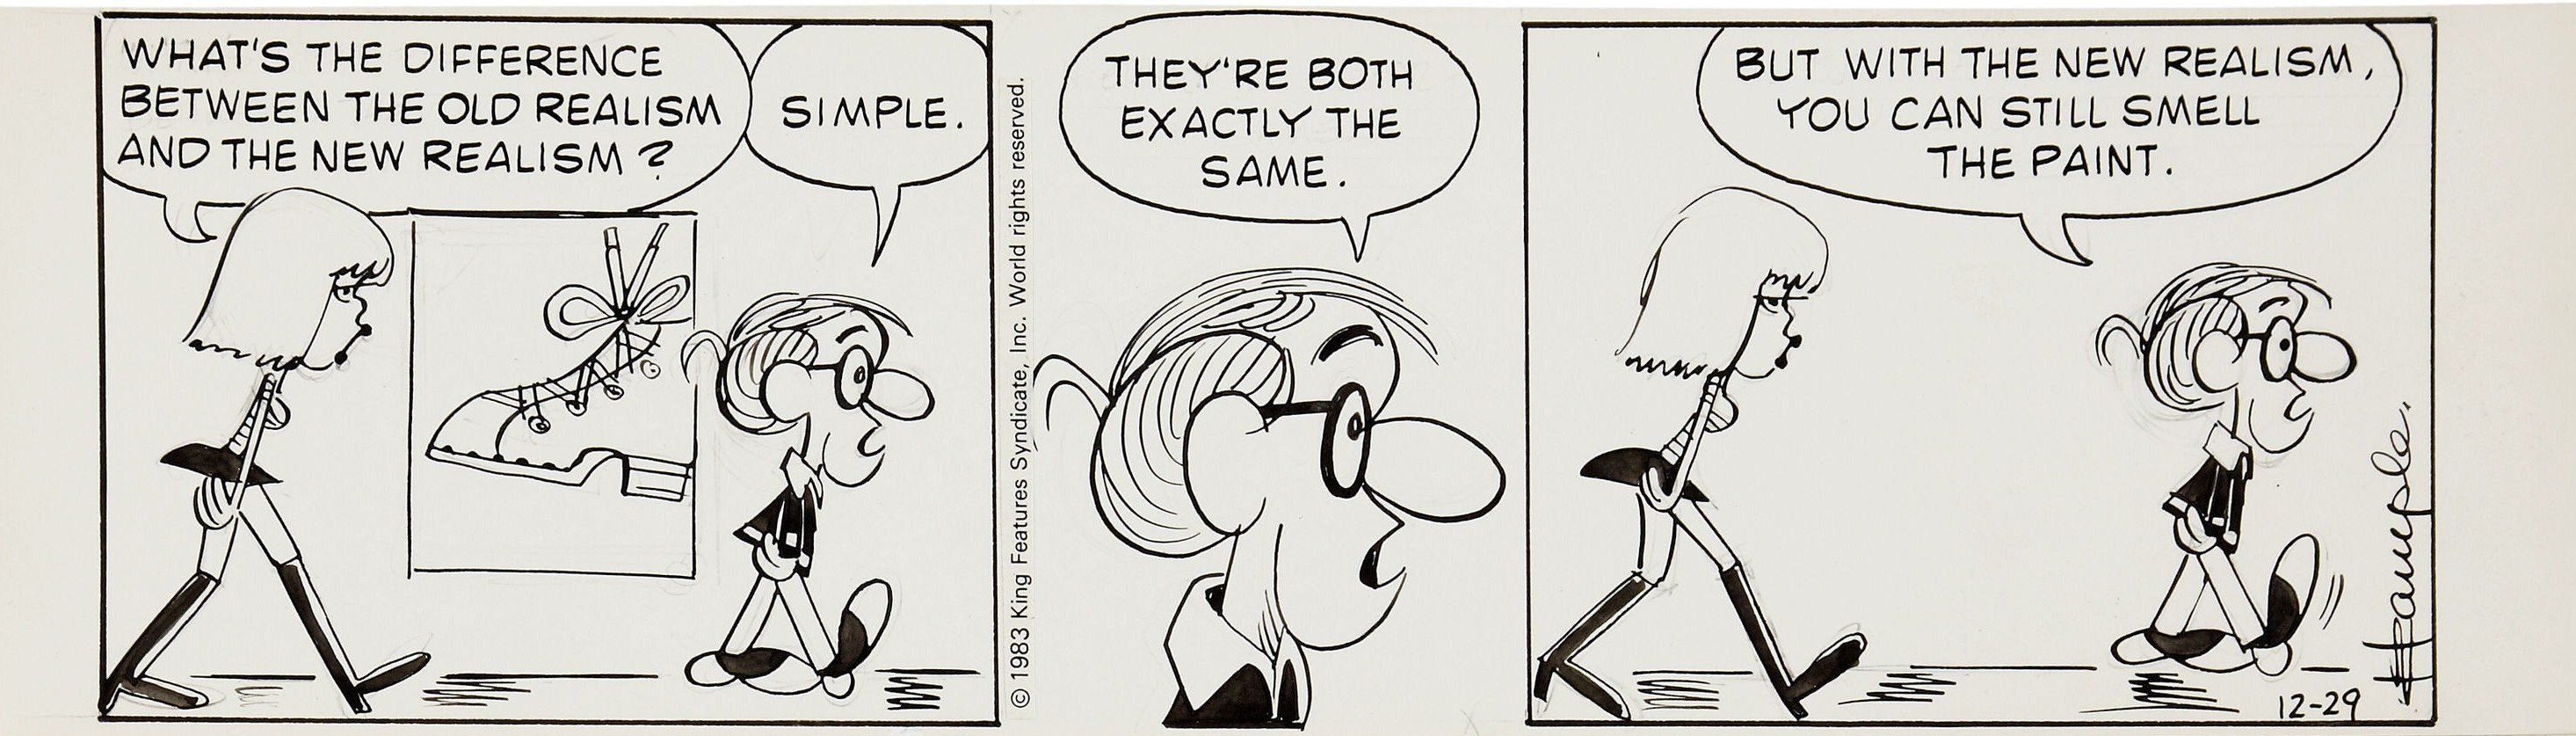 'Inside Woody Allen,' a comic strip from 1976-84: WoodyA7.jpg